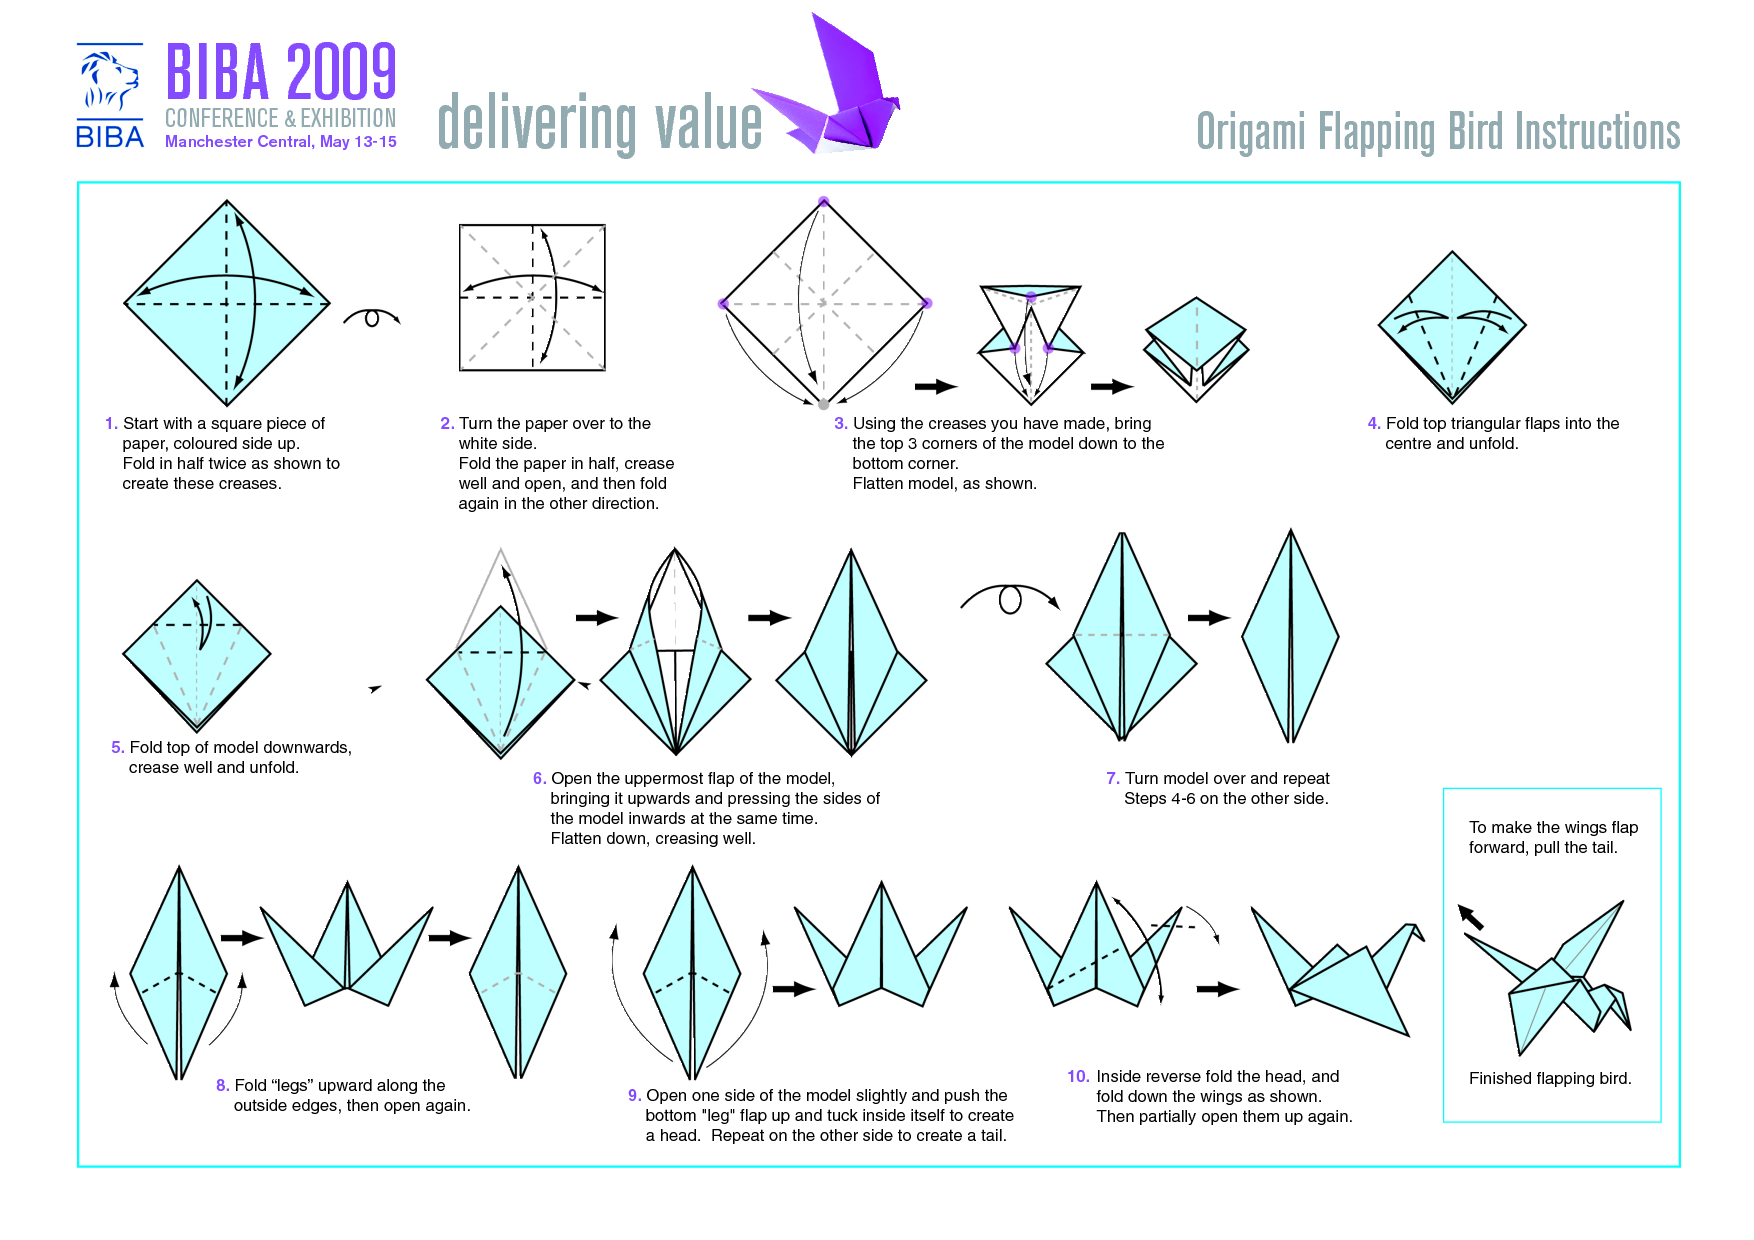 Flapping Bird Origami Instructions